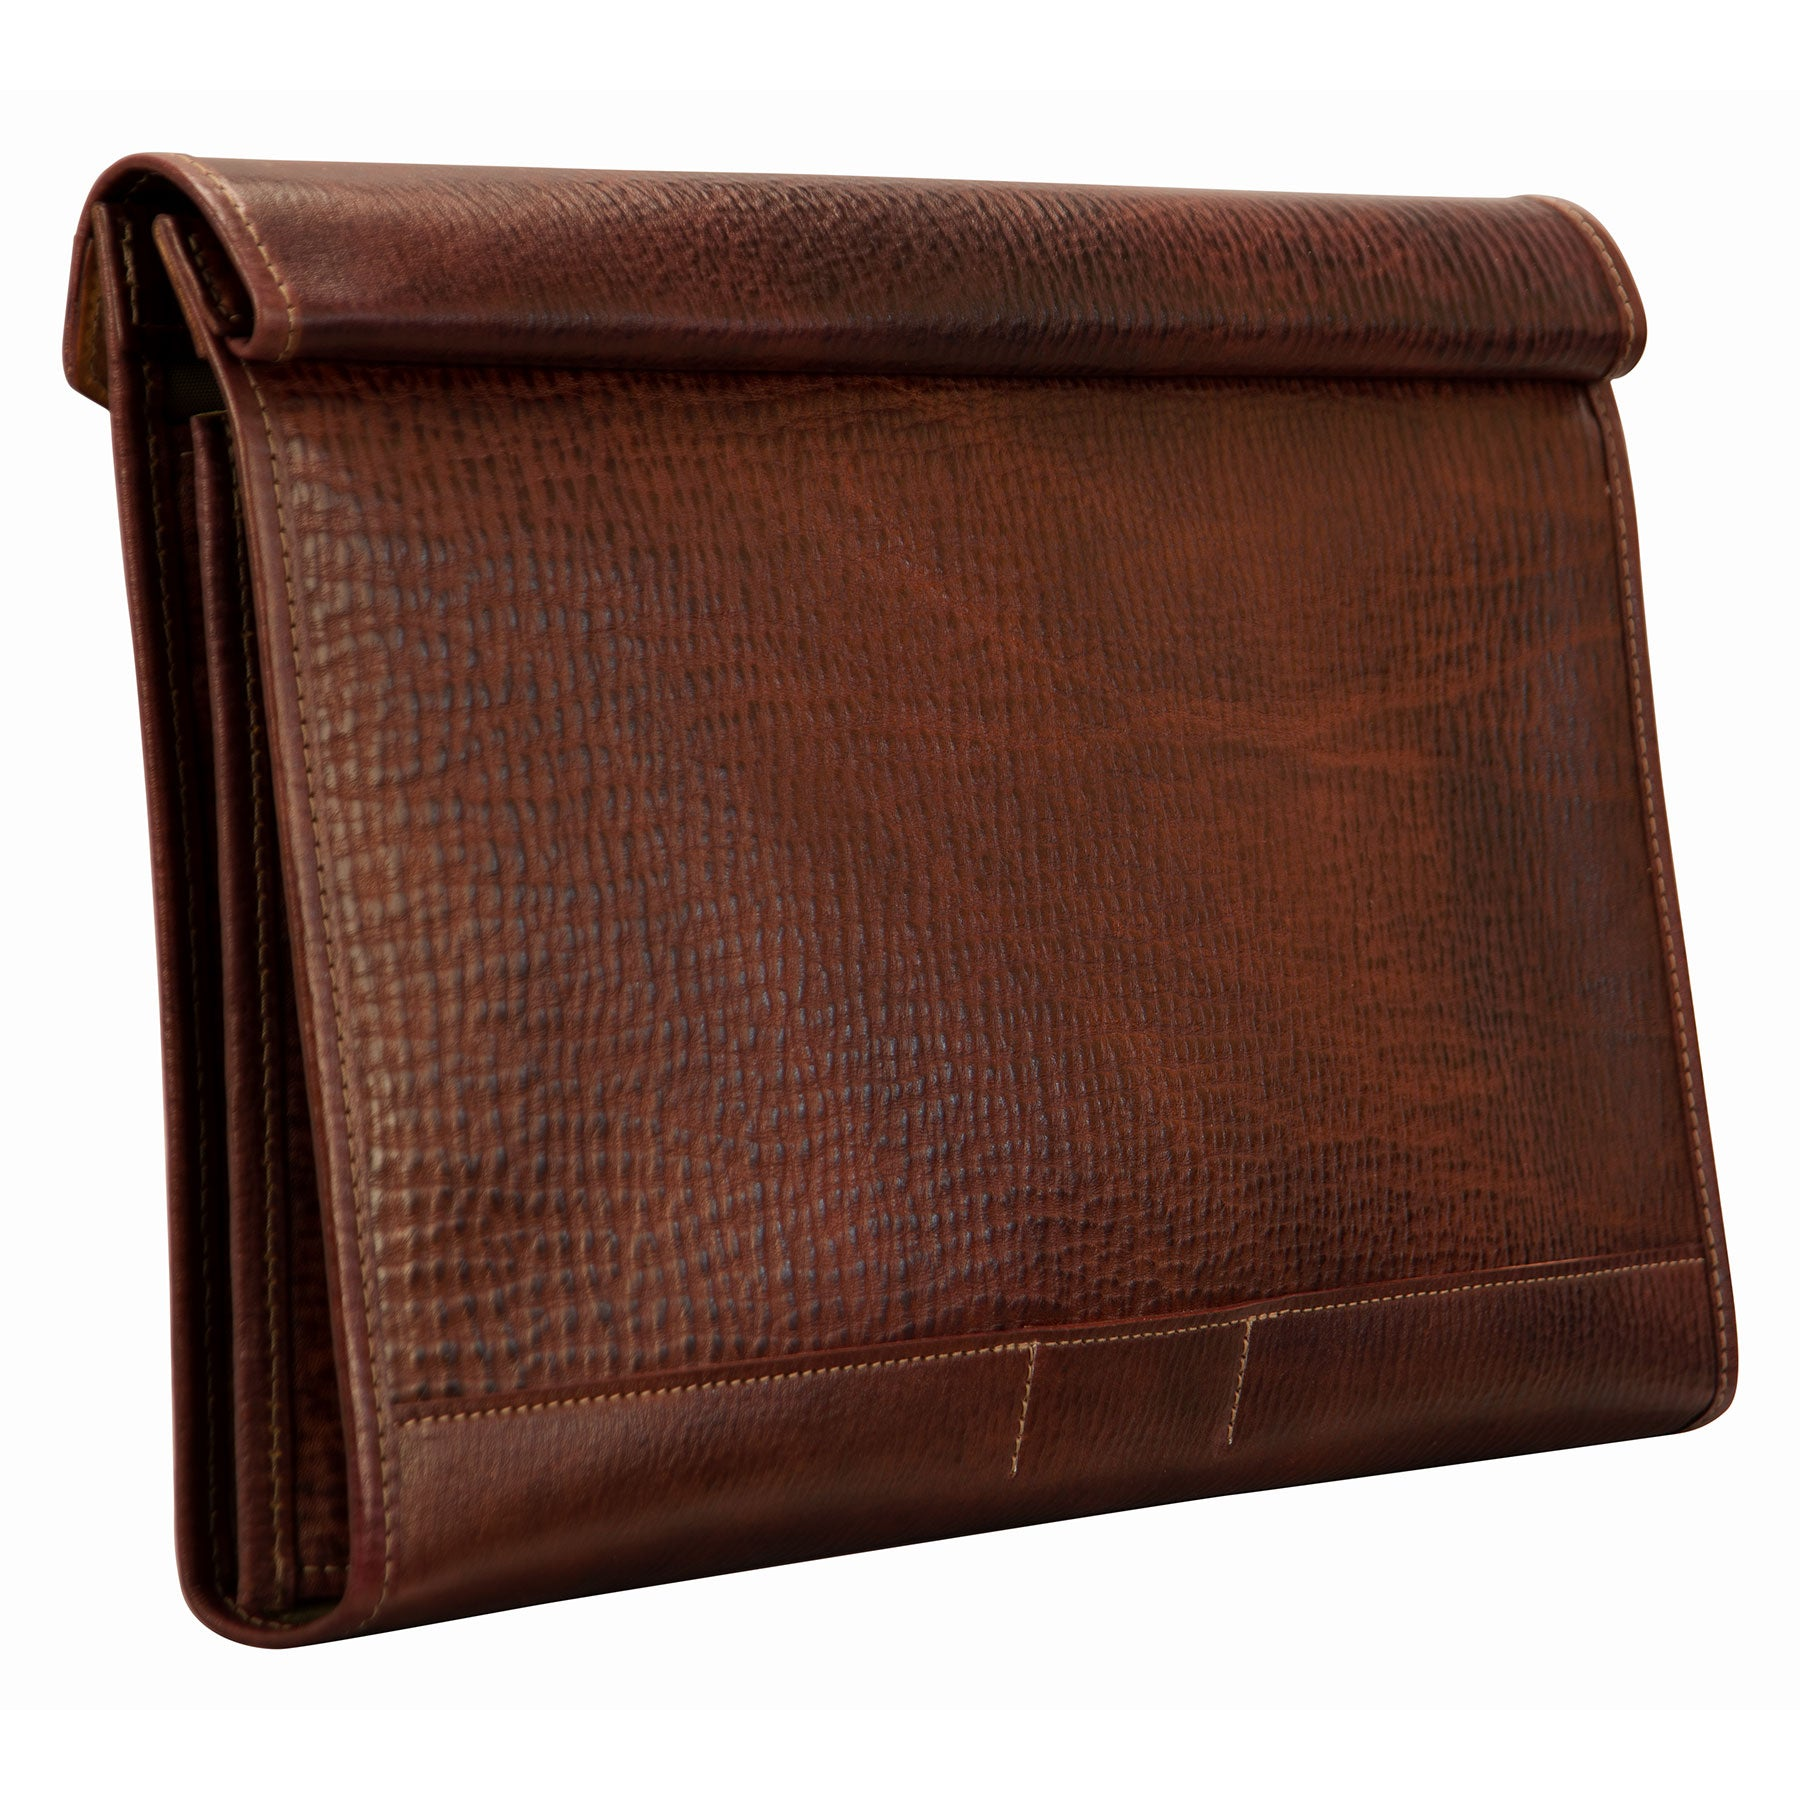 Glaser Designs Flap Folder Holder Portfolio. Hand colored Espresso vegetable tanned leather. Made to-measure, custom sizes.